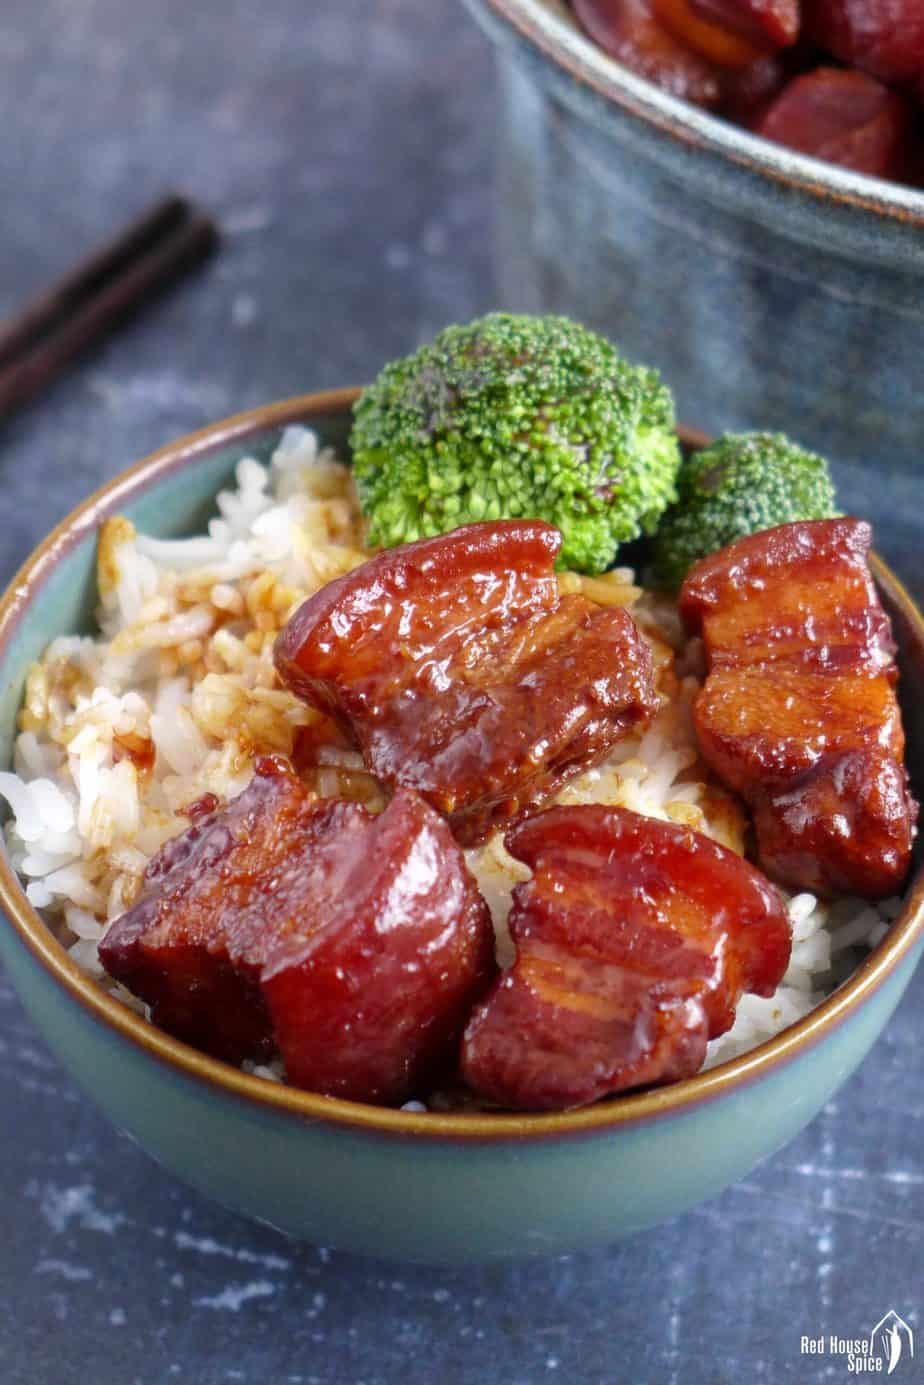 Red braised pork belly over a bowl of rice